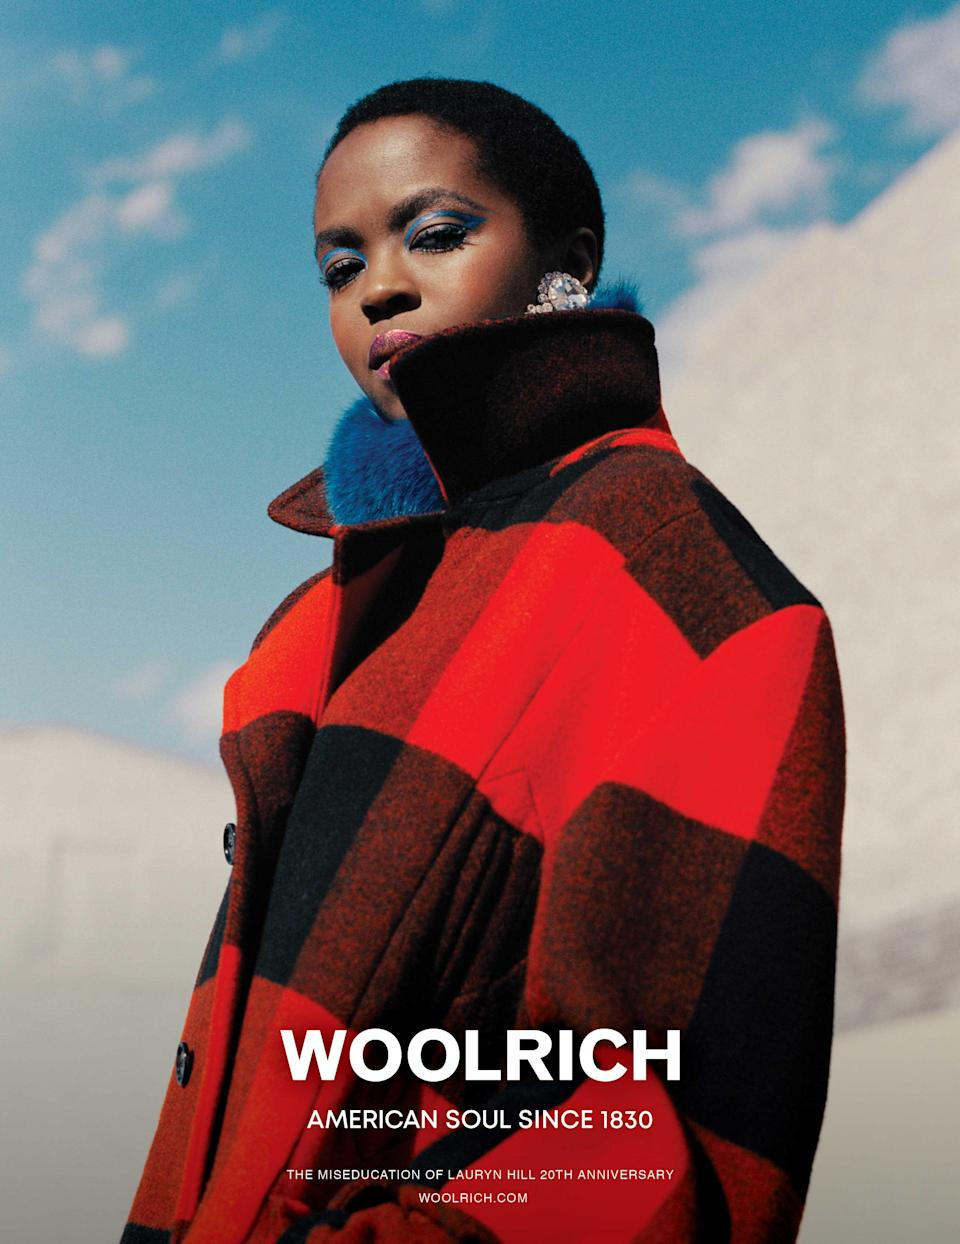 <p><strong>Model:</strong> Ms. Lauryn Hill<br><strong>Photographer:</strong> Jack Davison<br>(Photo: Courtesy of Woolrich) </p>